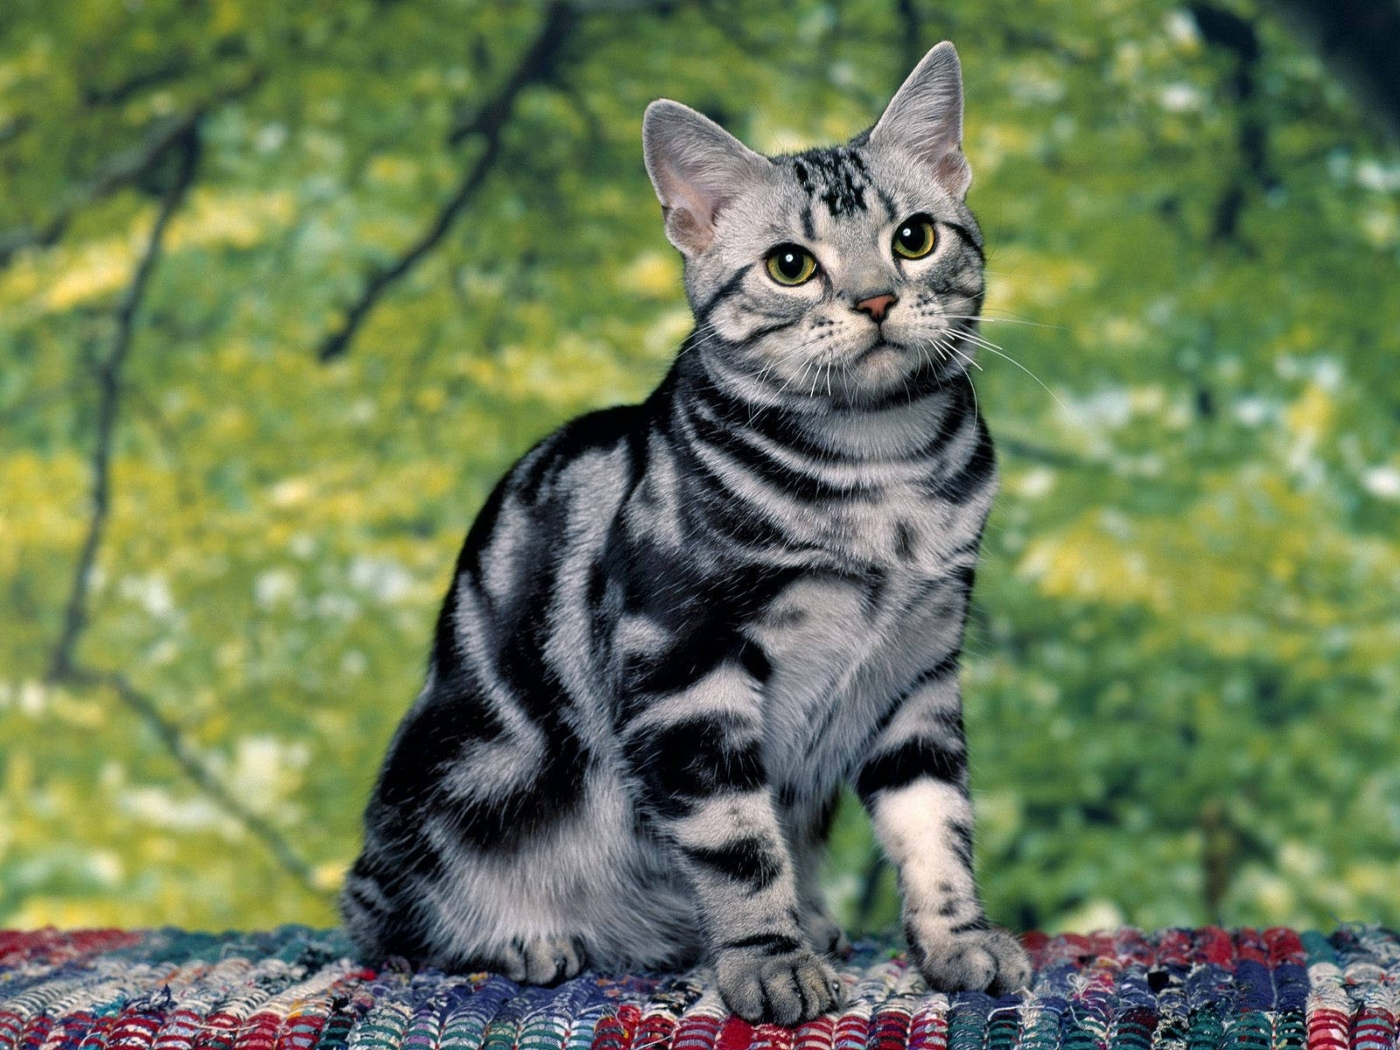 40967 download wallpaper Cats, Animals screensavers and pictures for free